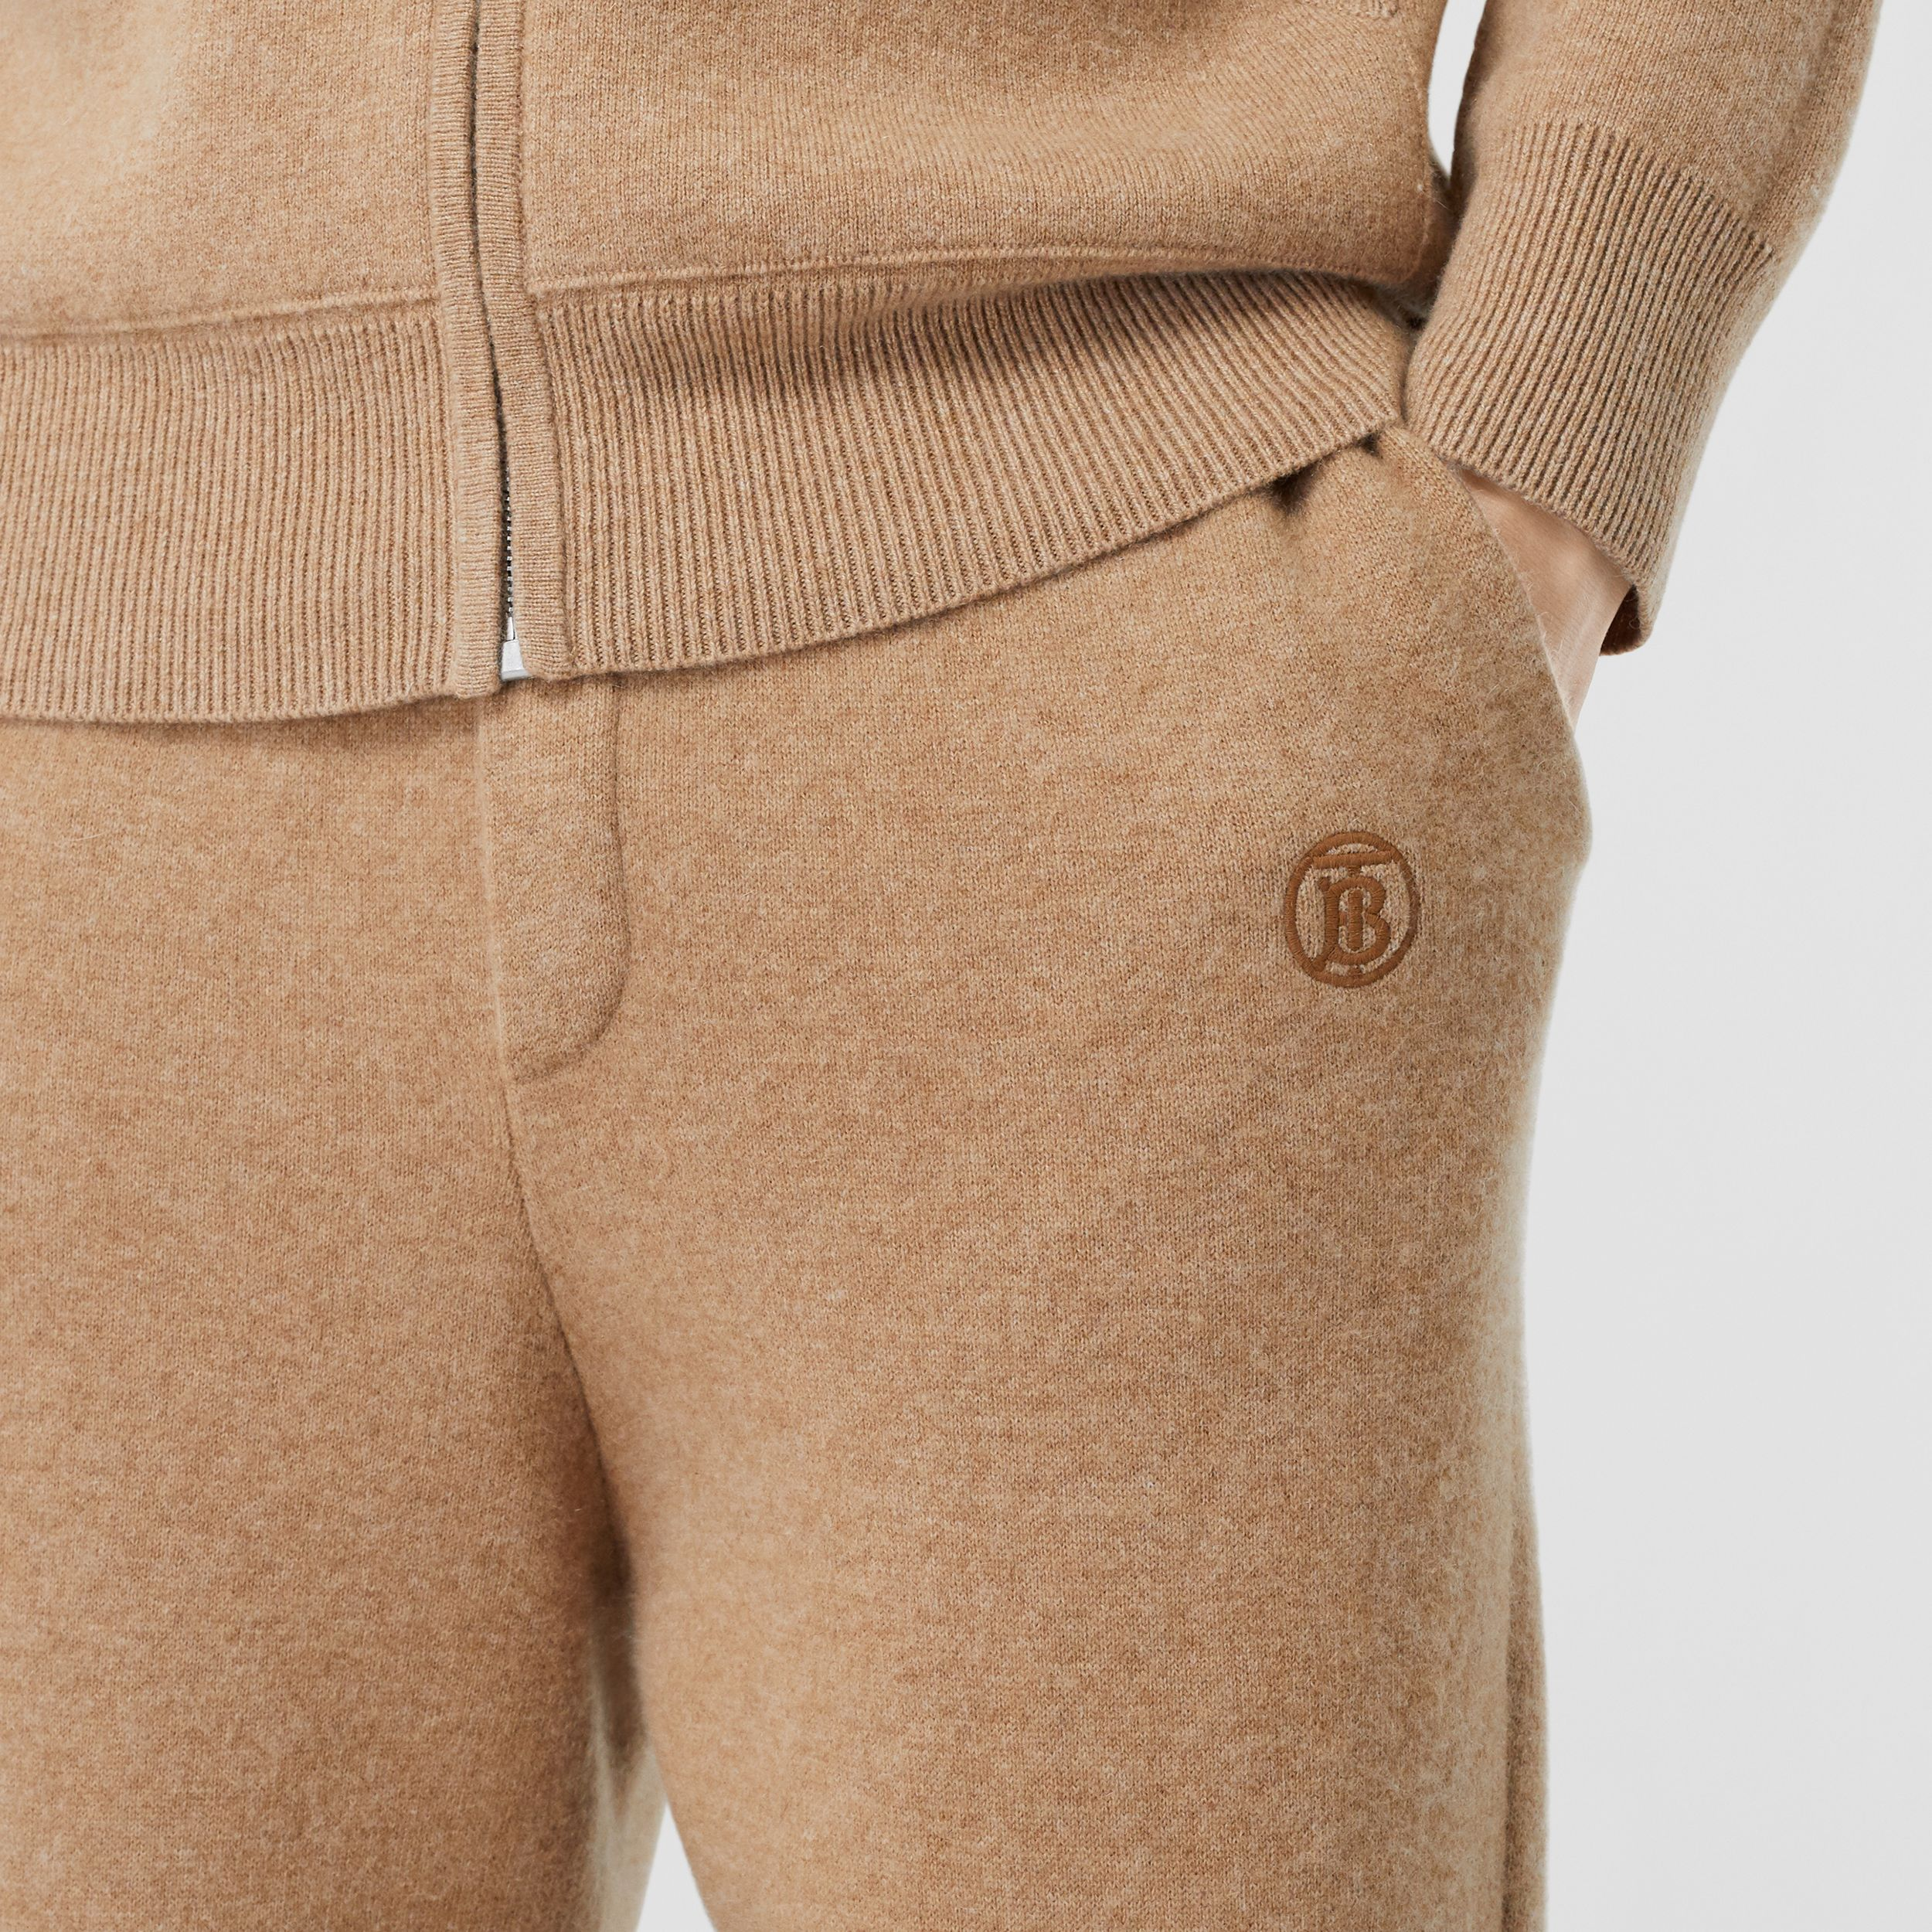 Monogram Motif Cashmere Blend Jogging Pants in Pale Coffee - Men | Burberry - 2